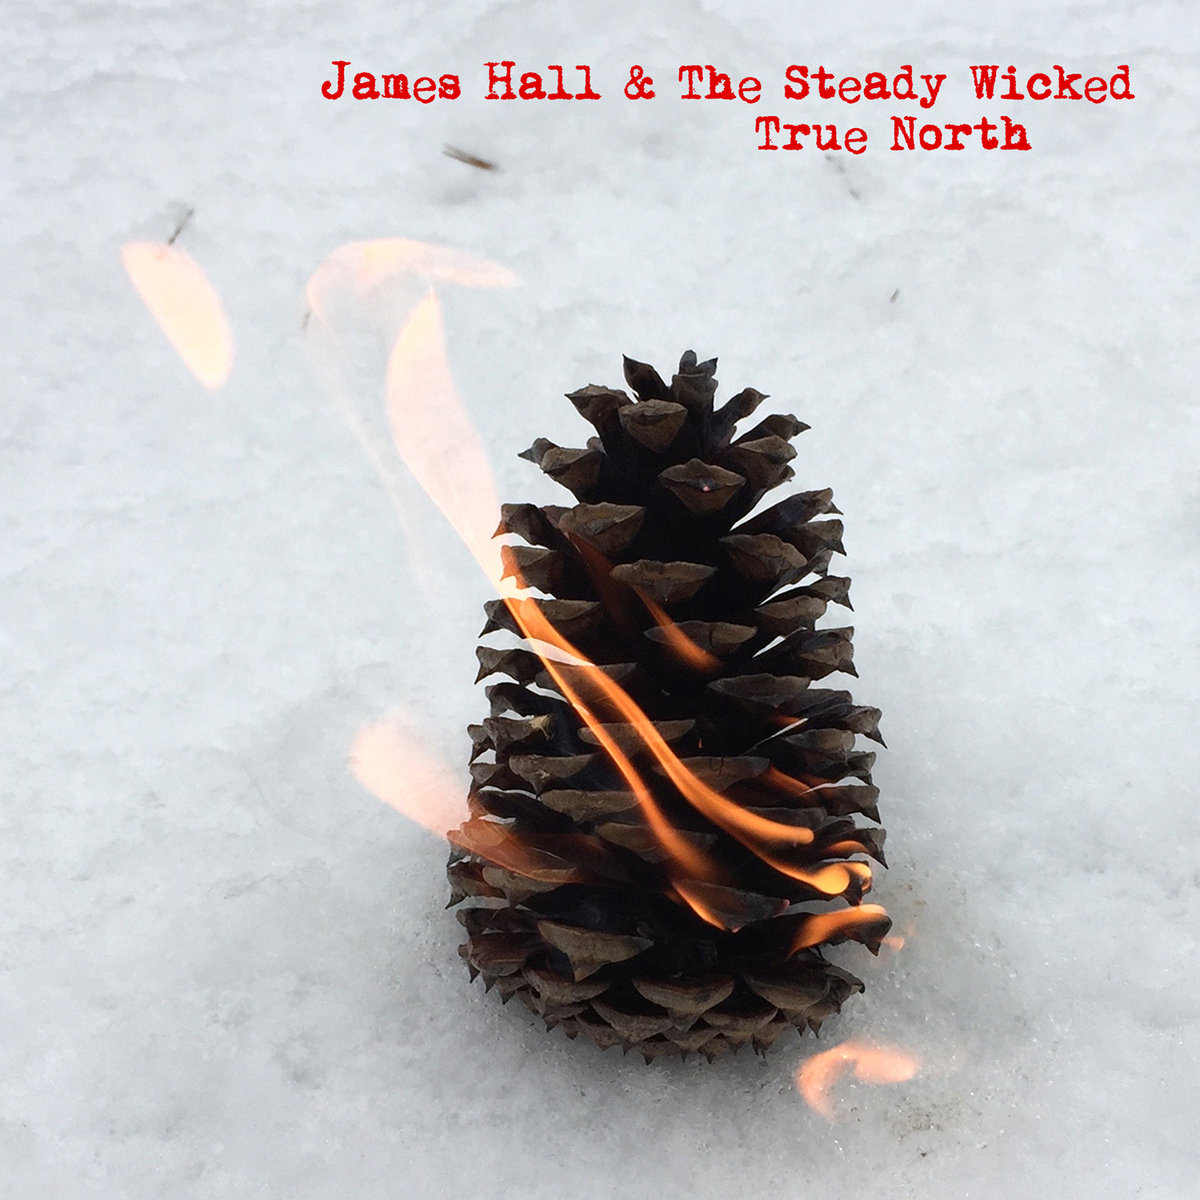 True North (Single) by James Hall & The Steady Wicked